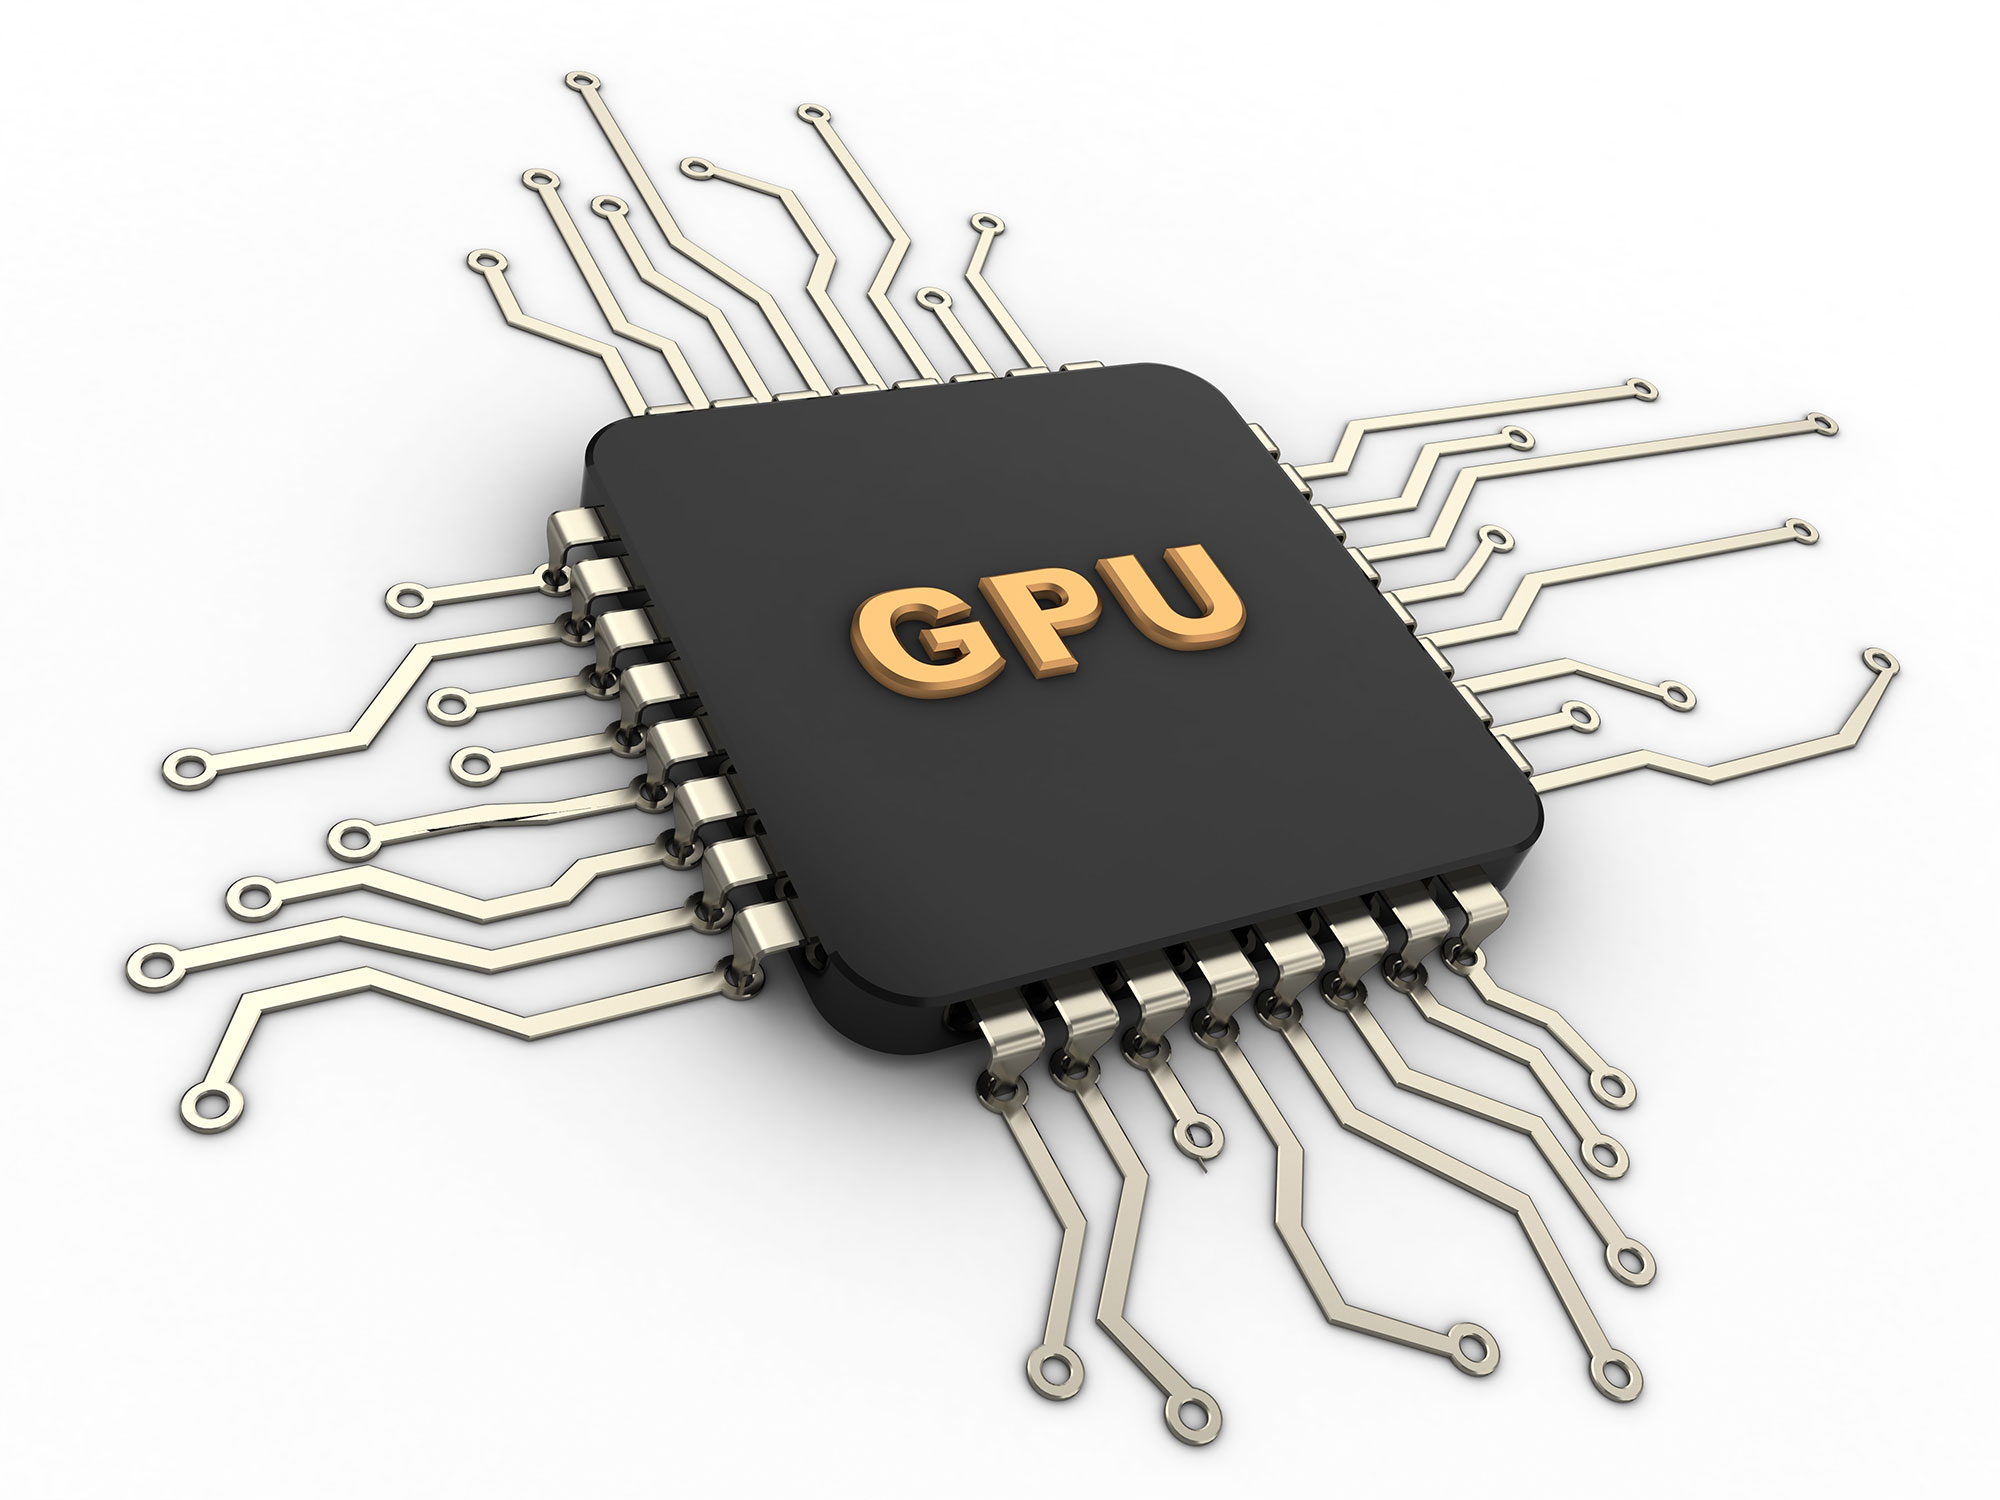 Achieving Groundbreaking Productivity with GPUs